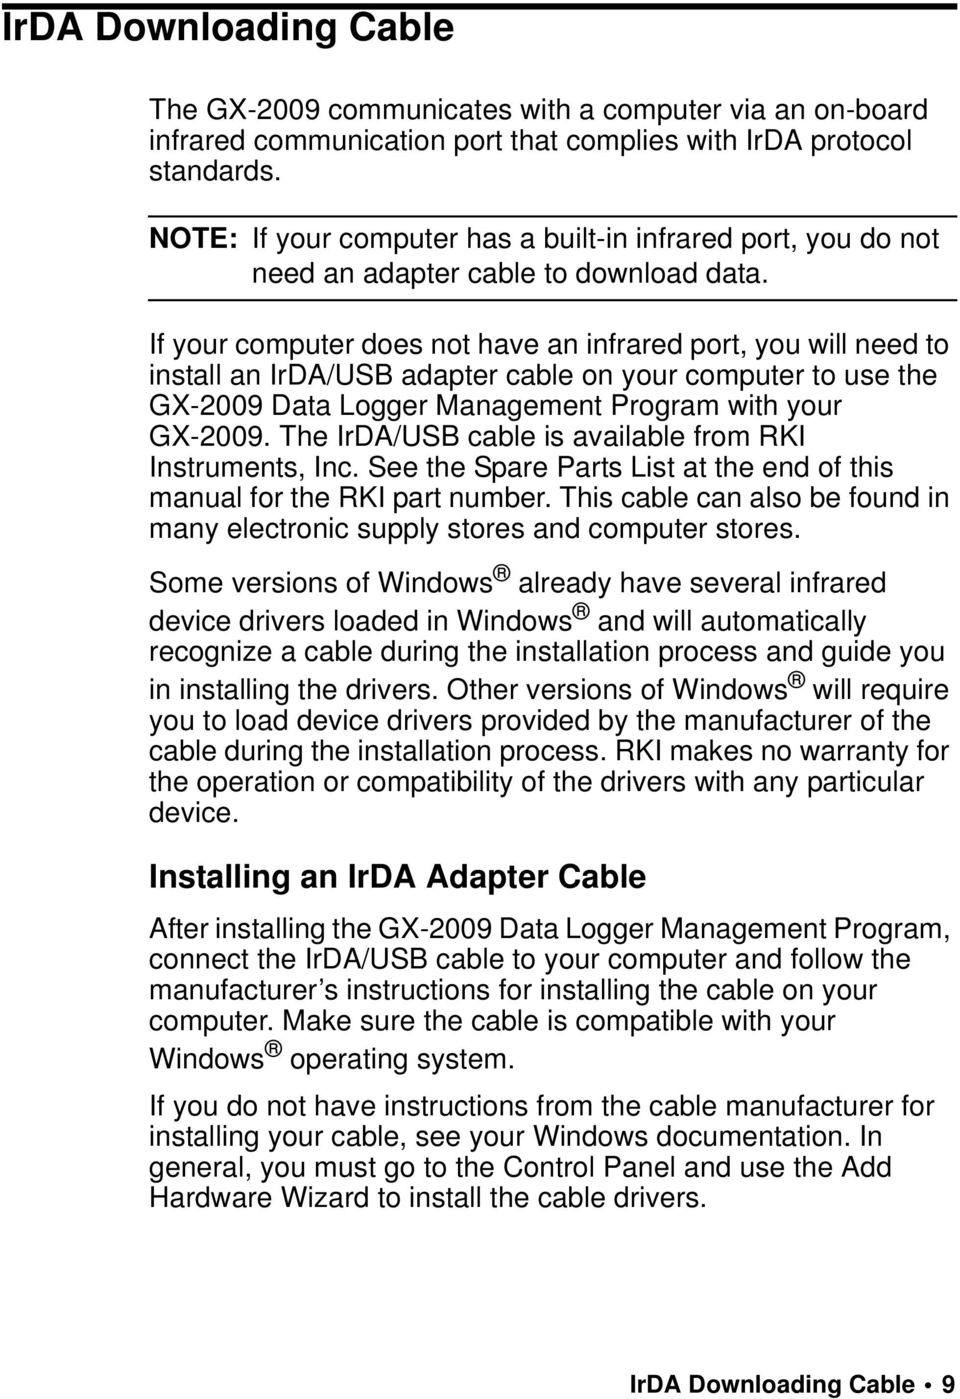 If your computer does not have an infrared port, you will need to install an IrDA/USB adapter cable on your computer to use the GX-2009 Data Logger Management Program with your GX-2009.